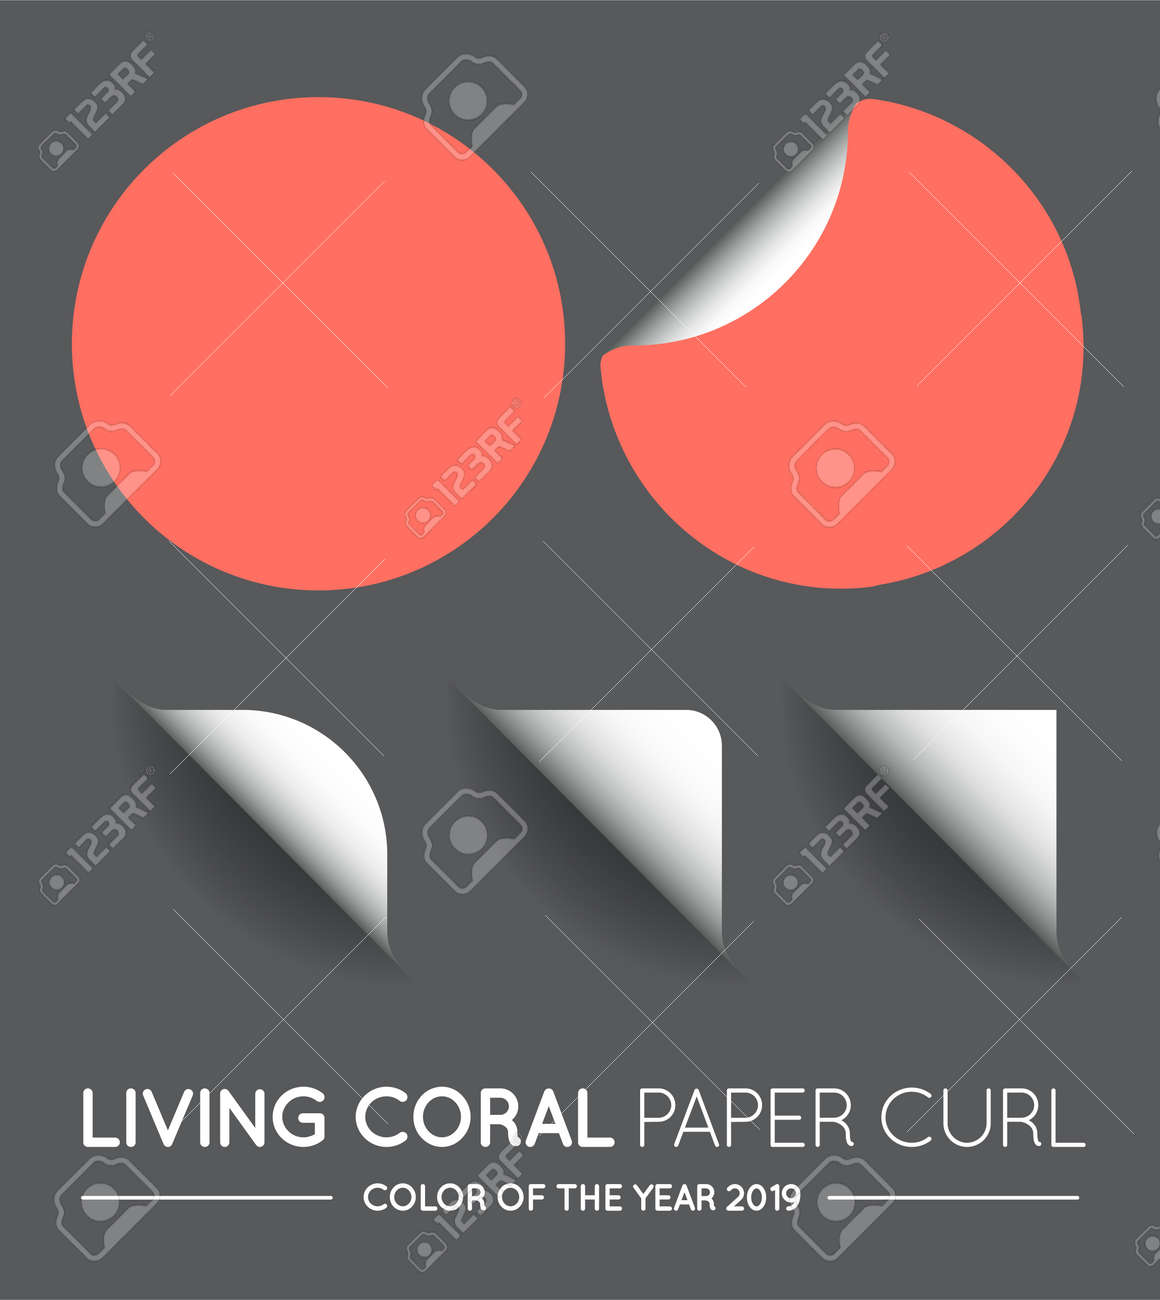 Trendy Color Coral Vector Round Circle with Paper Curl with Shadow Isolated Set. - 157290770